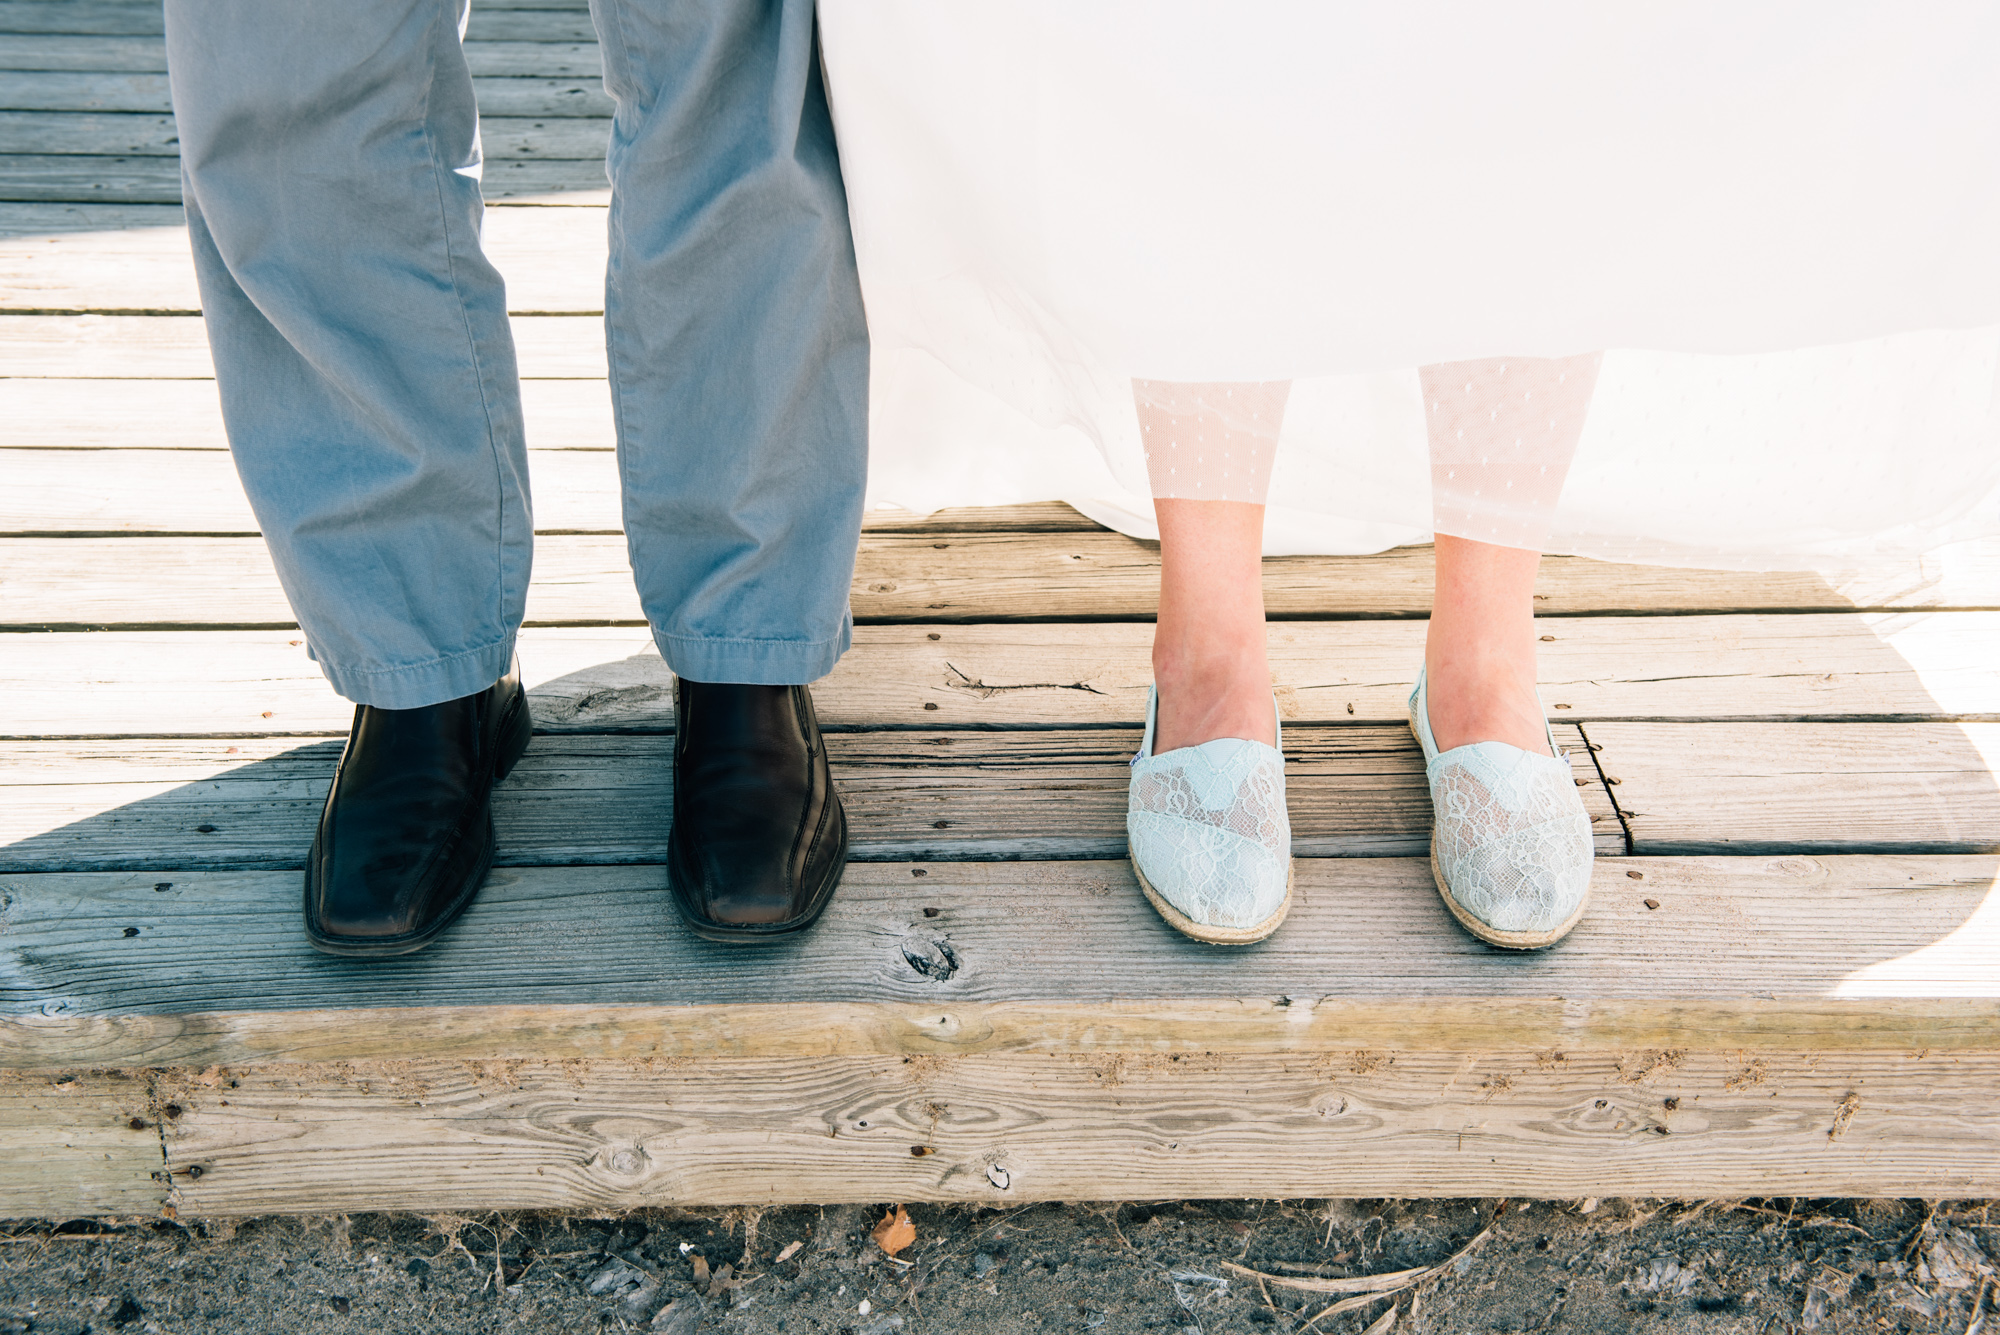 Groom and Bride's shoes